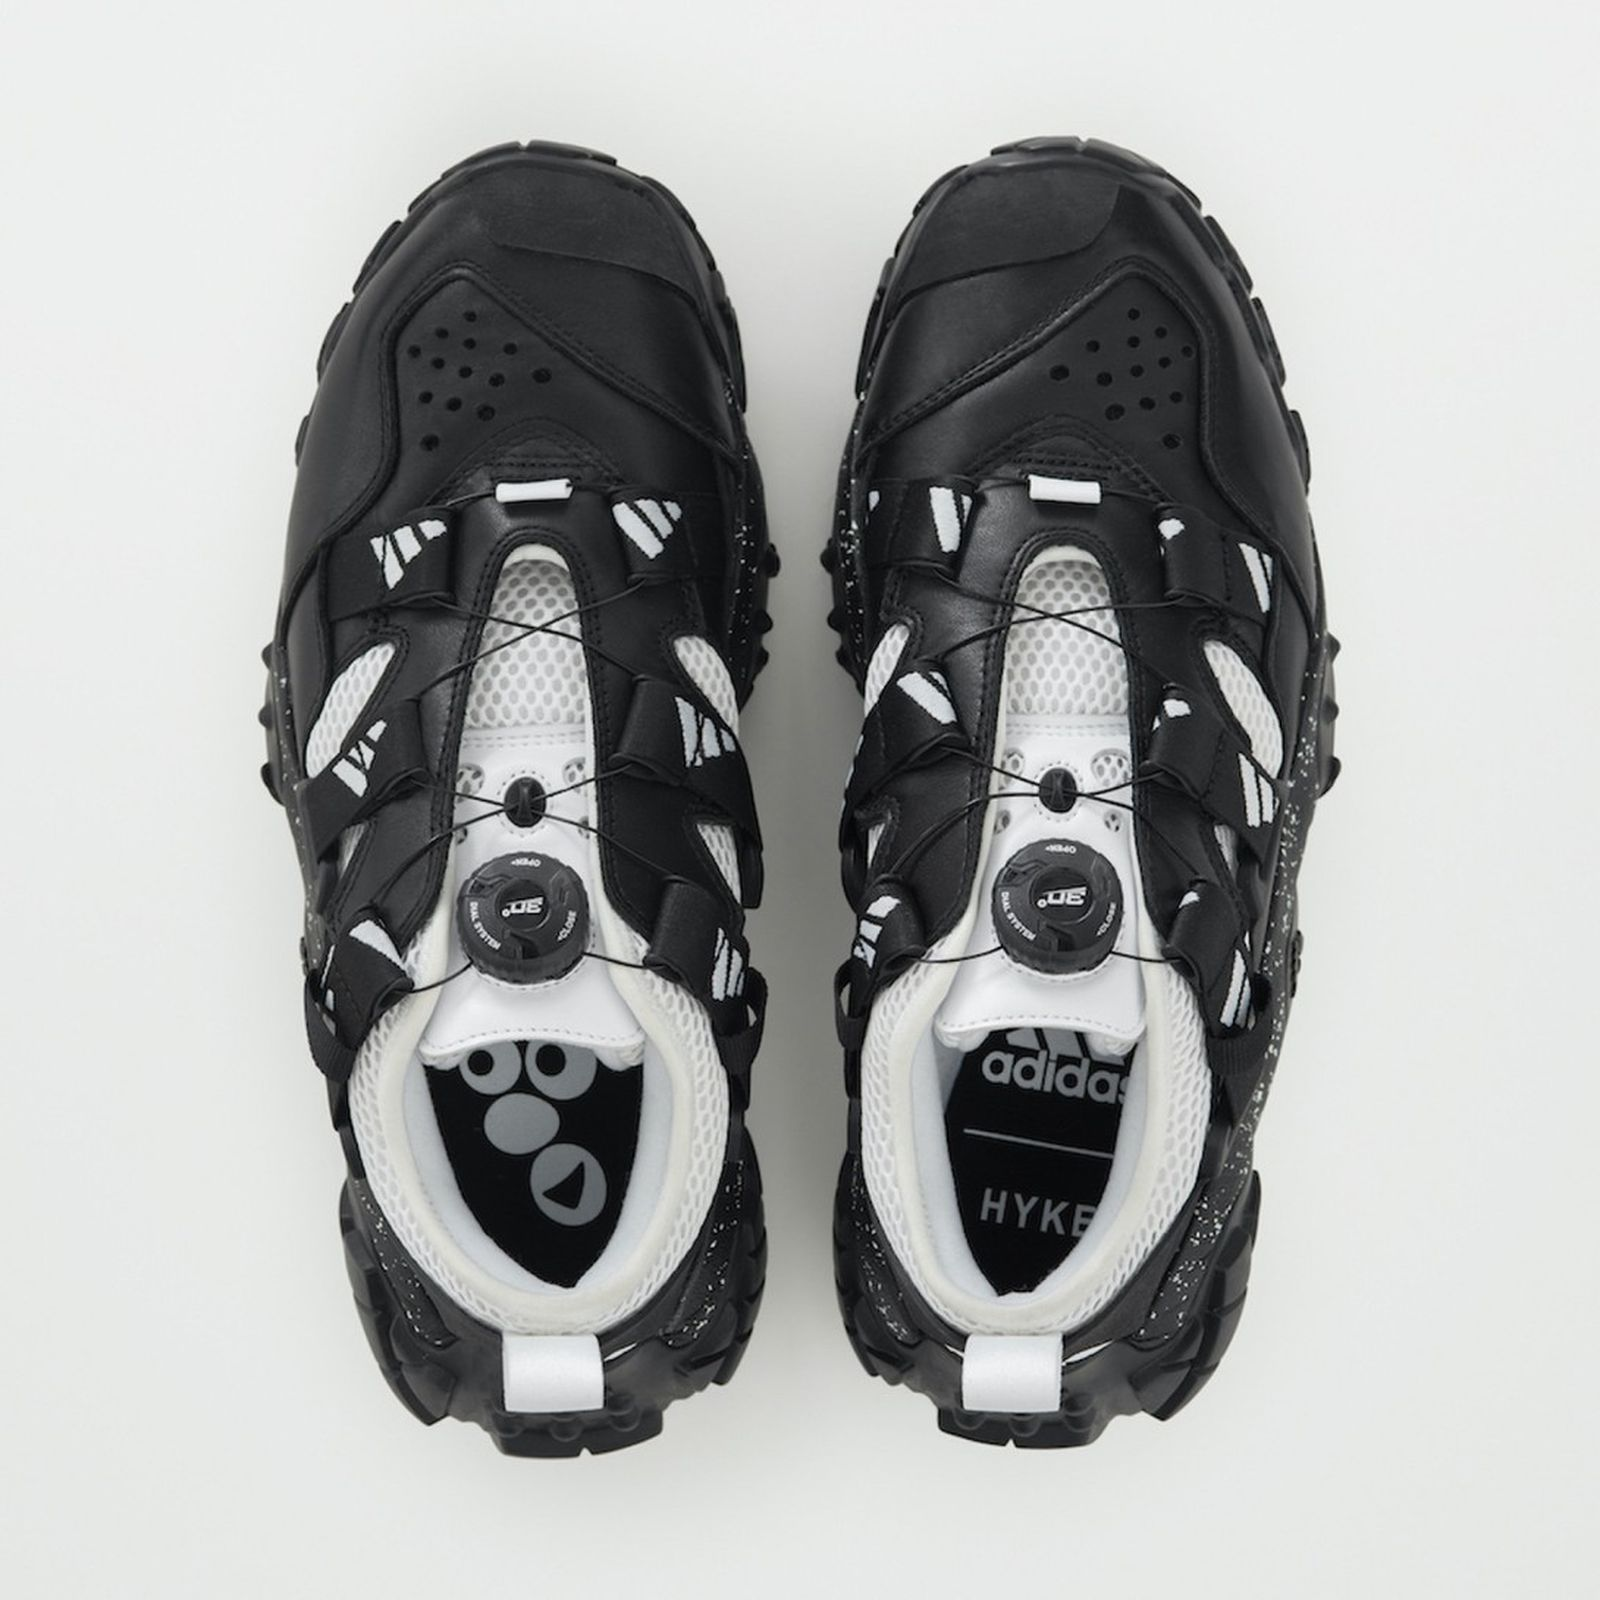 hyke-adidas-collab-fw20-sneakers-16